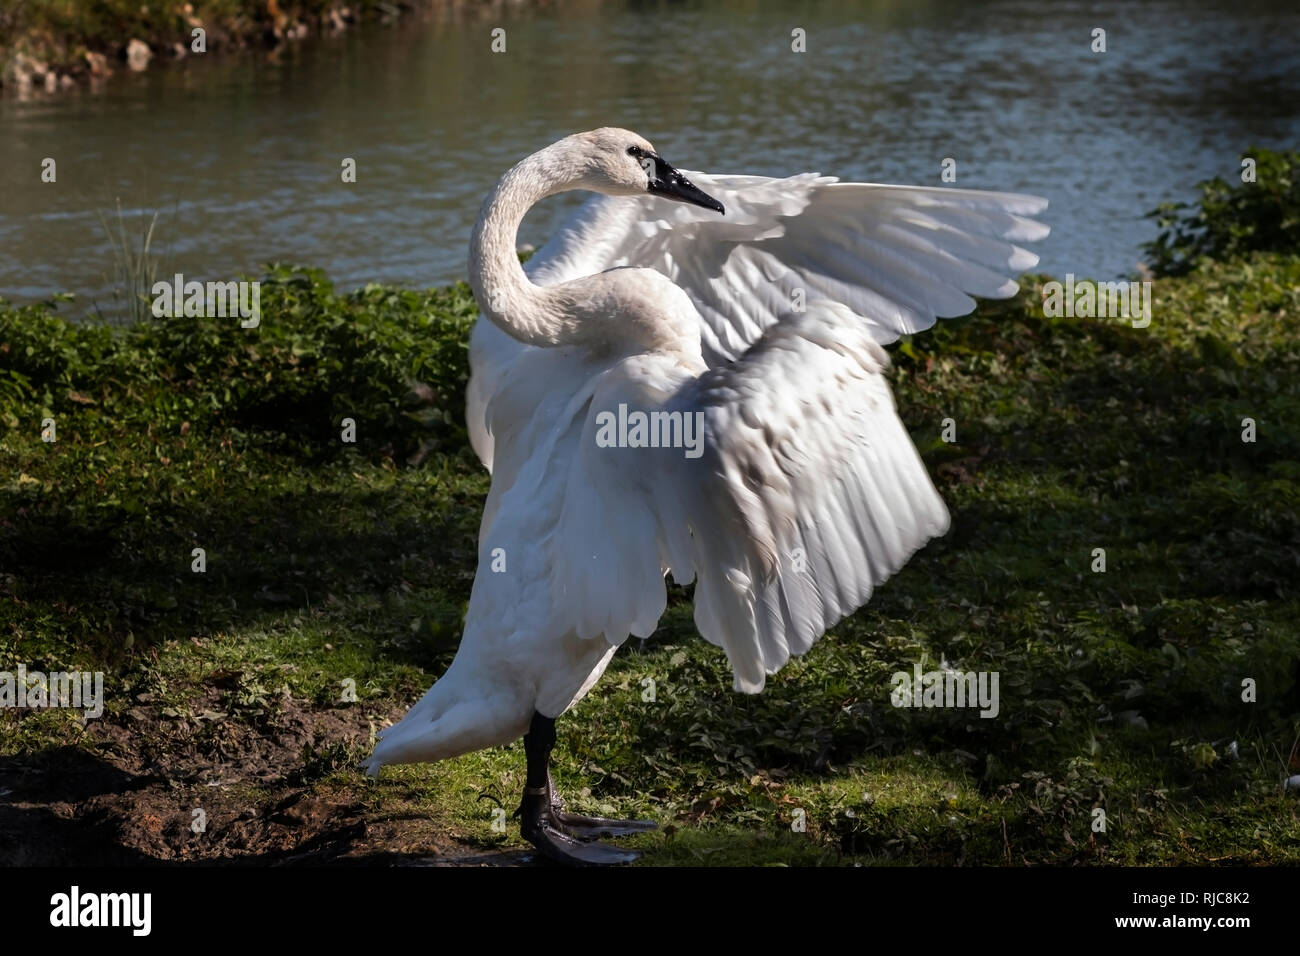 Trumpeter swan looking as though it is pointing with one of its wings - Stock Image